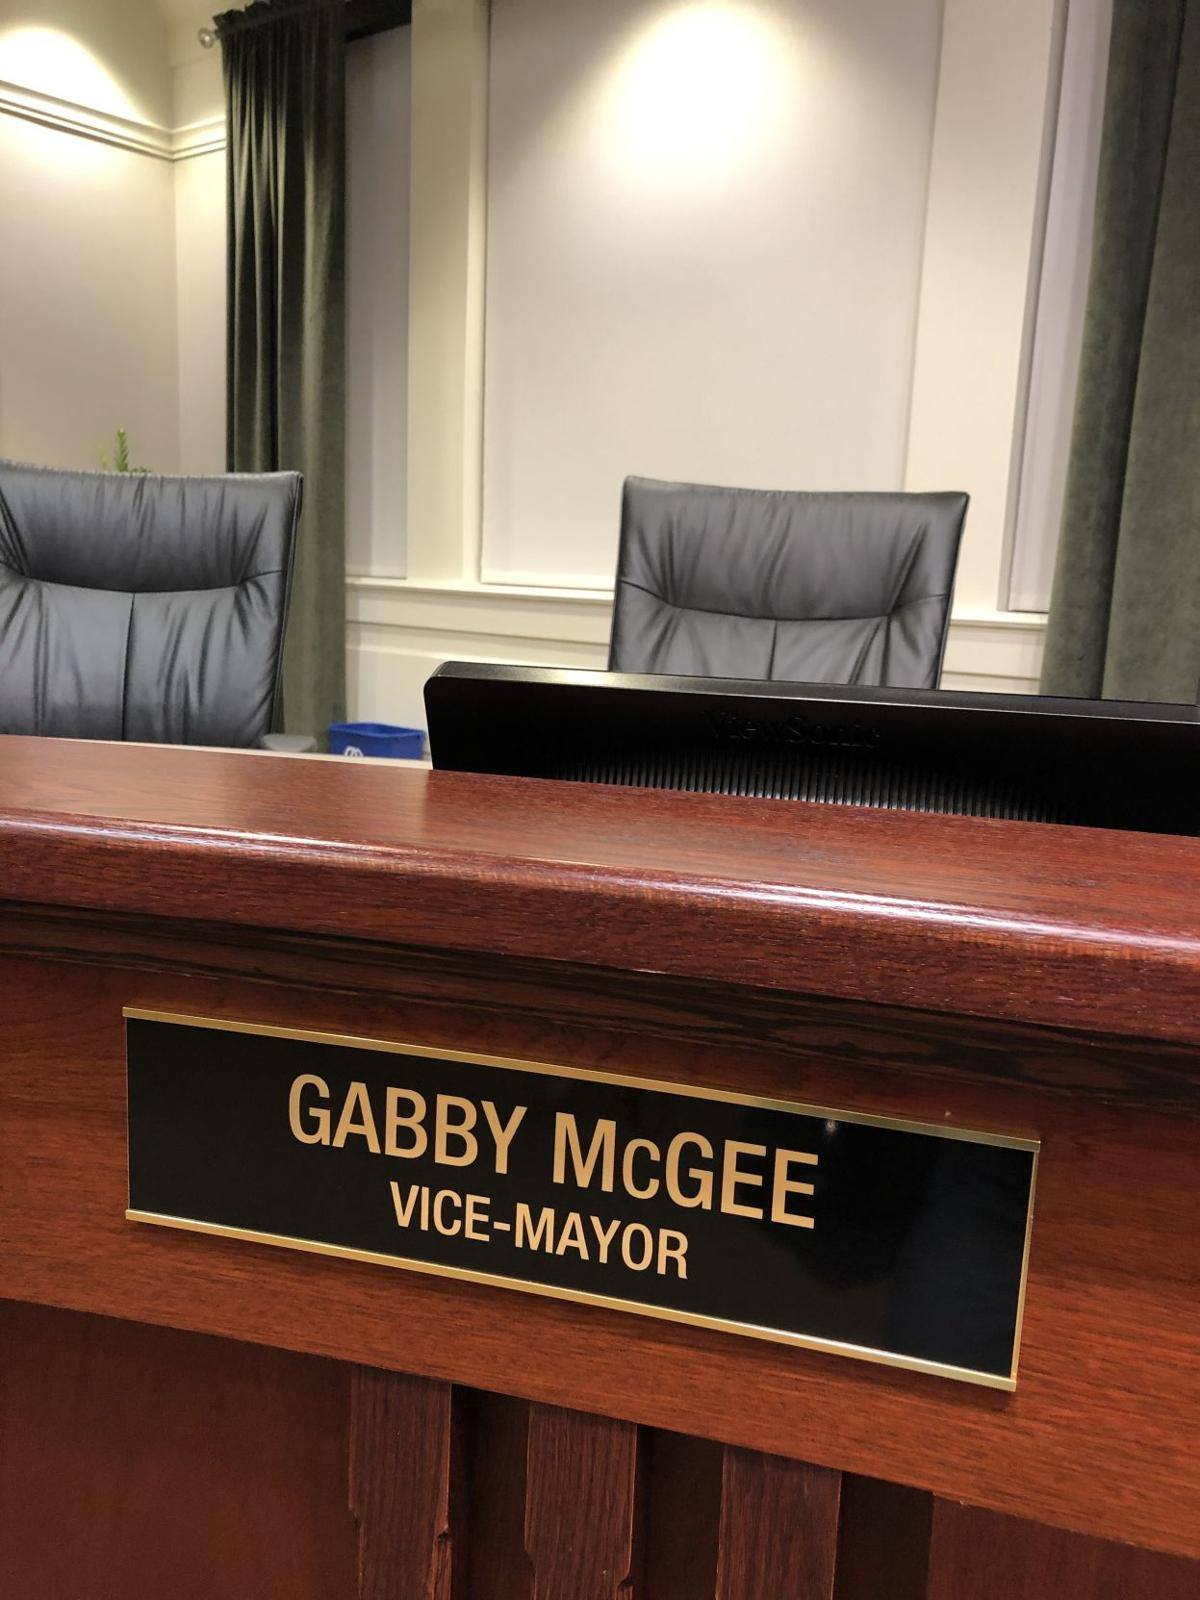 Career move forces Oldsmar councilwoman to resign